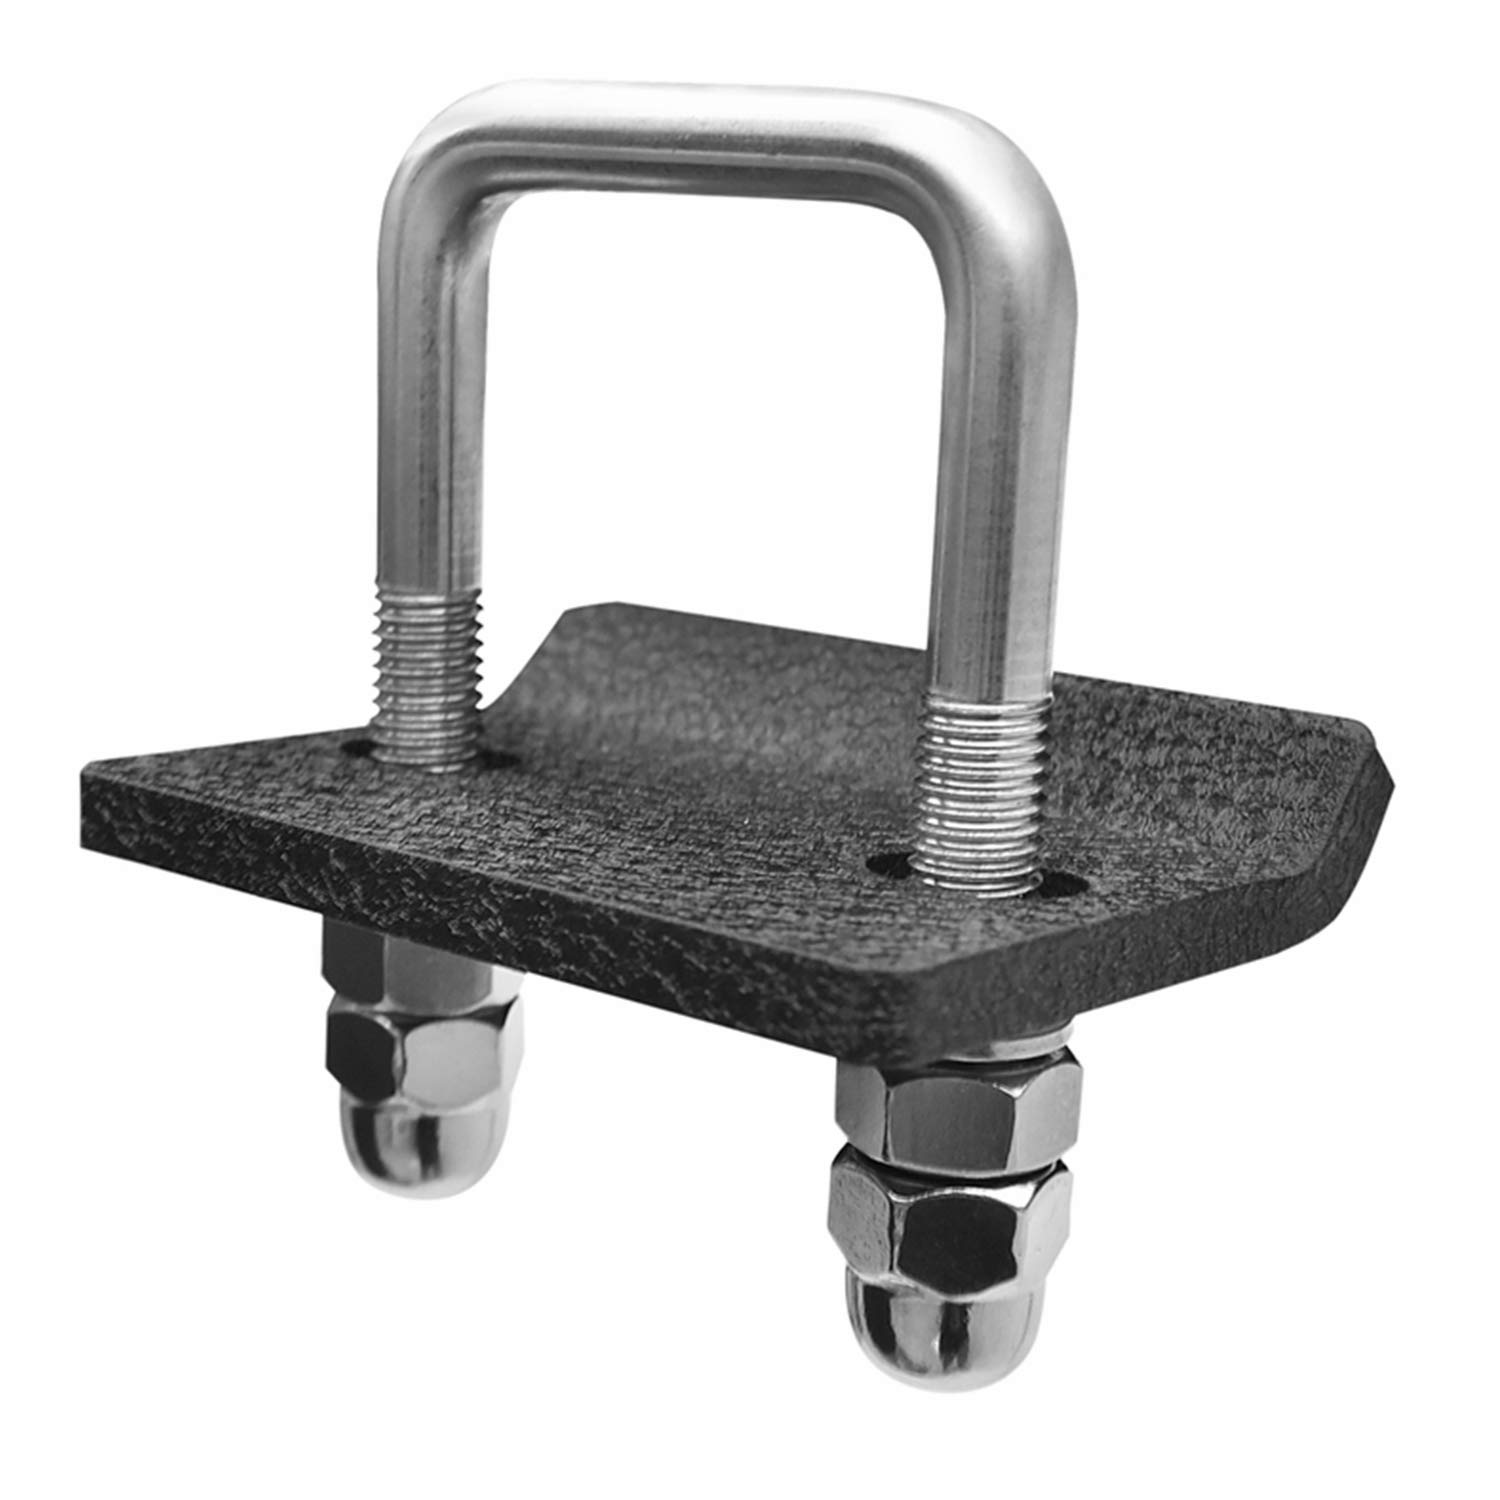 TAC Hitch Tightener Fit 1.25'' and 2'' Hitches 304 Stainless Steel Anti-Rattle Stabilizer Rust-Free Heavy Duty Lock Down Tow Clamp Suitable for Trailers, Carriers & Racks No Wobble by TAC TRUCK ACCESSORIES COMPANY